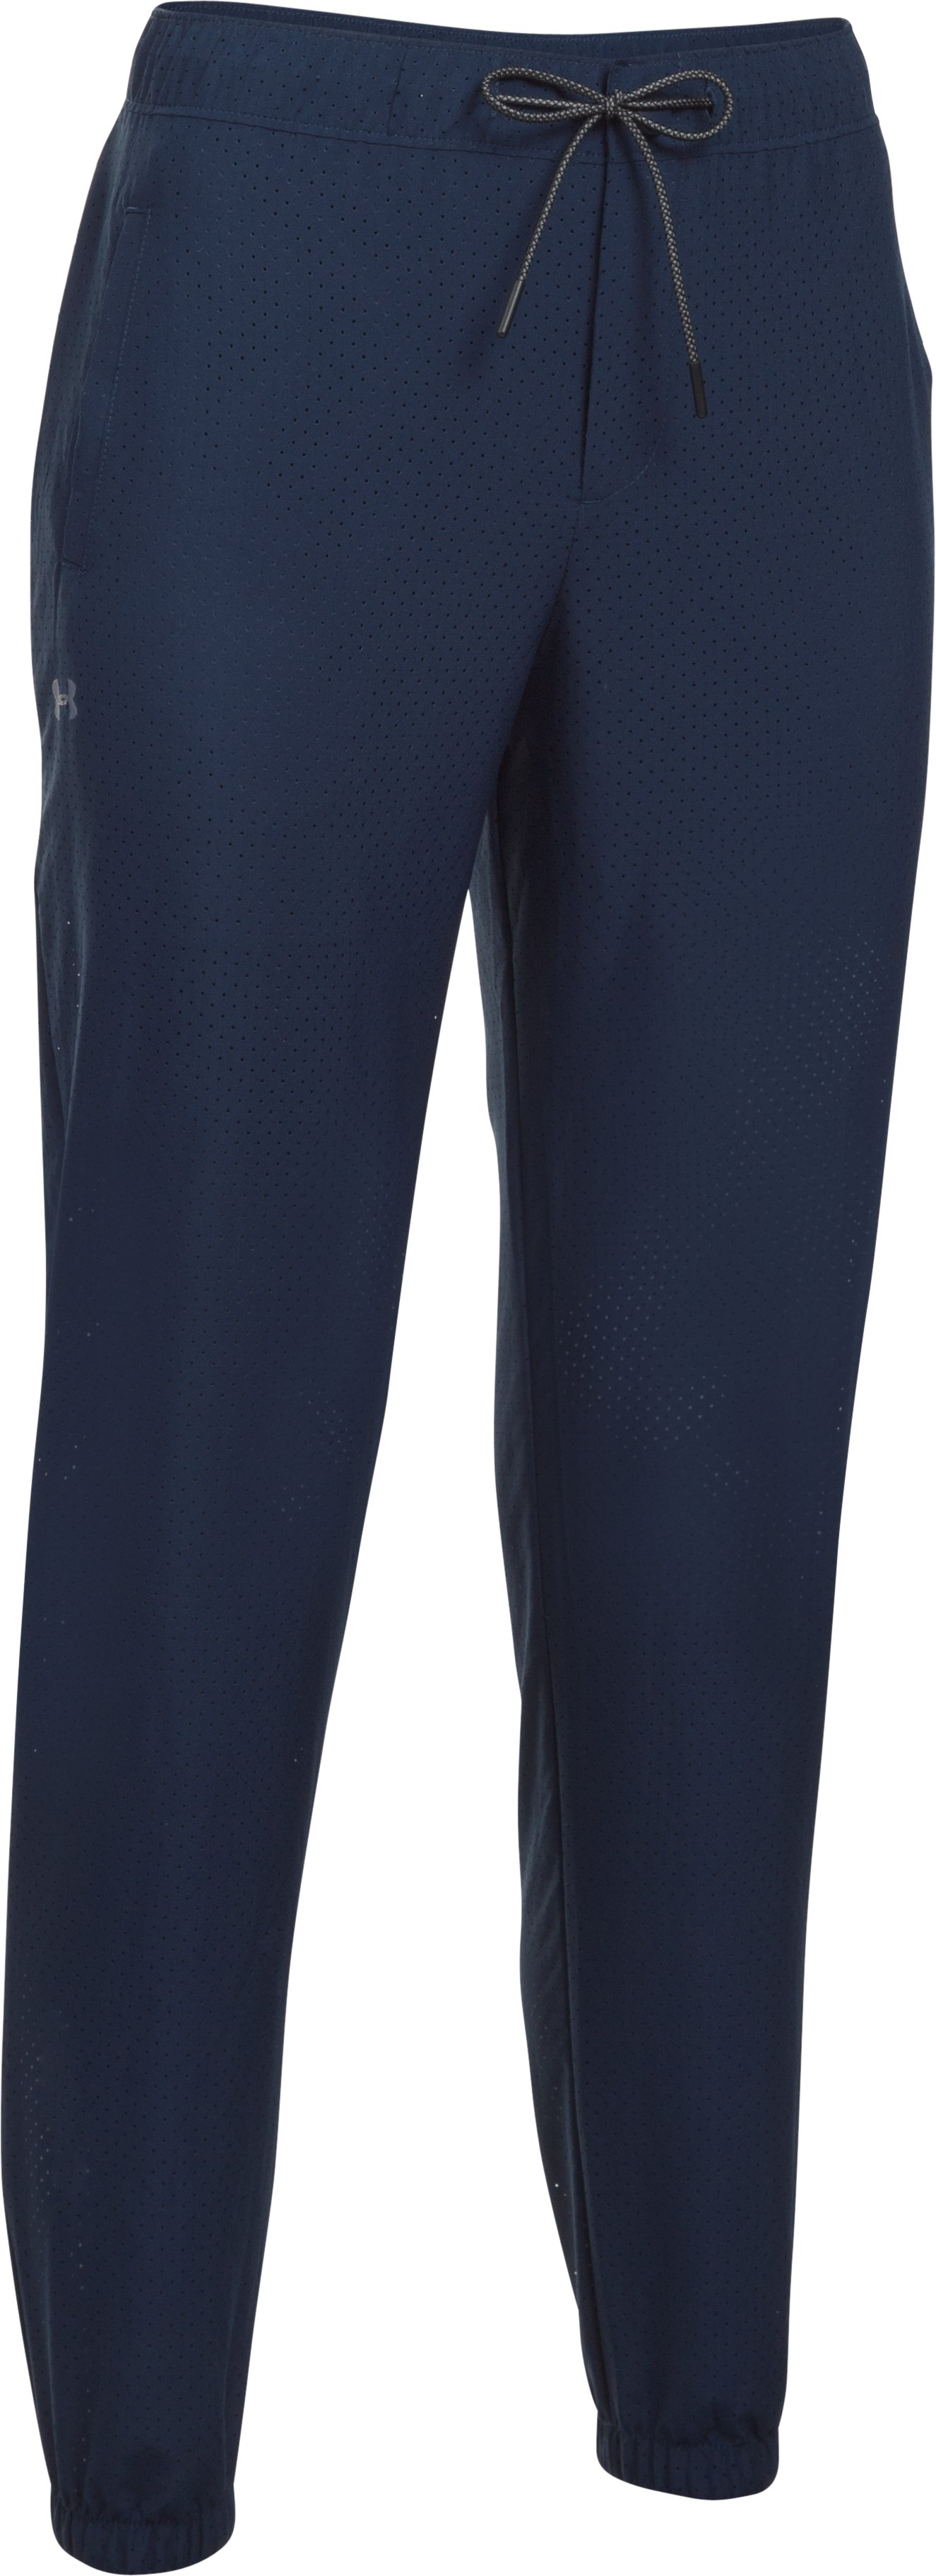 Women's UA Easy Perf Pants, NAVY SEAL, undefined